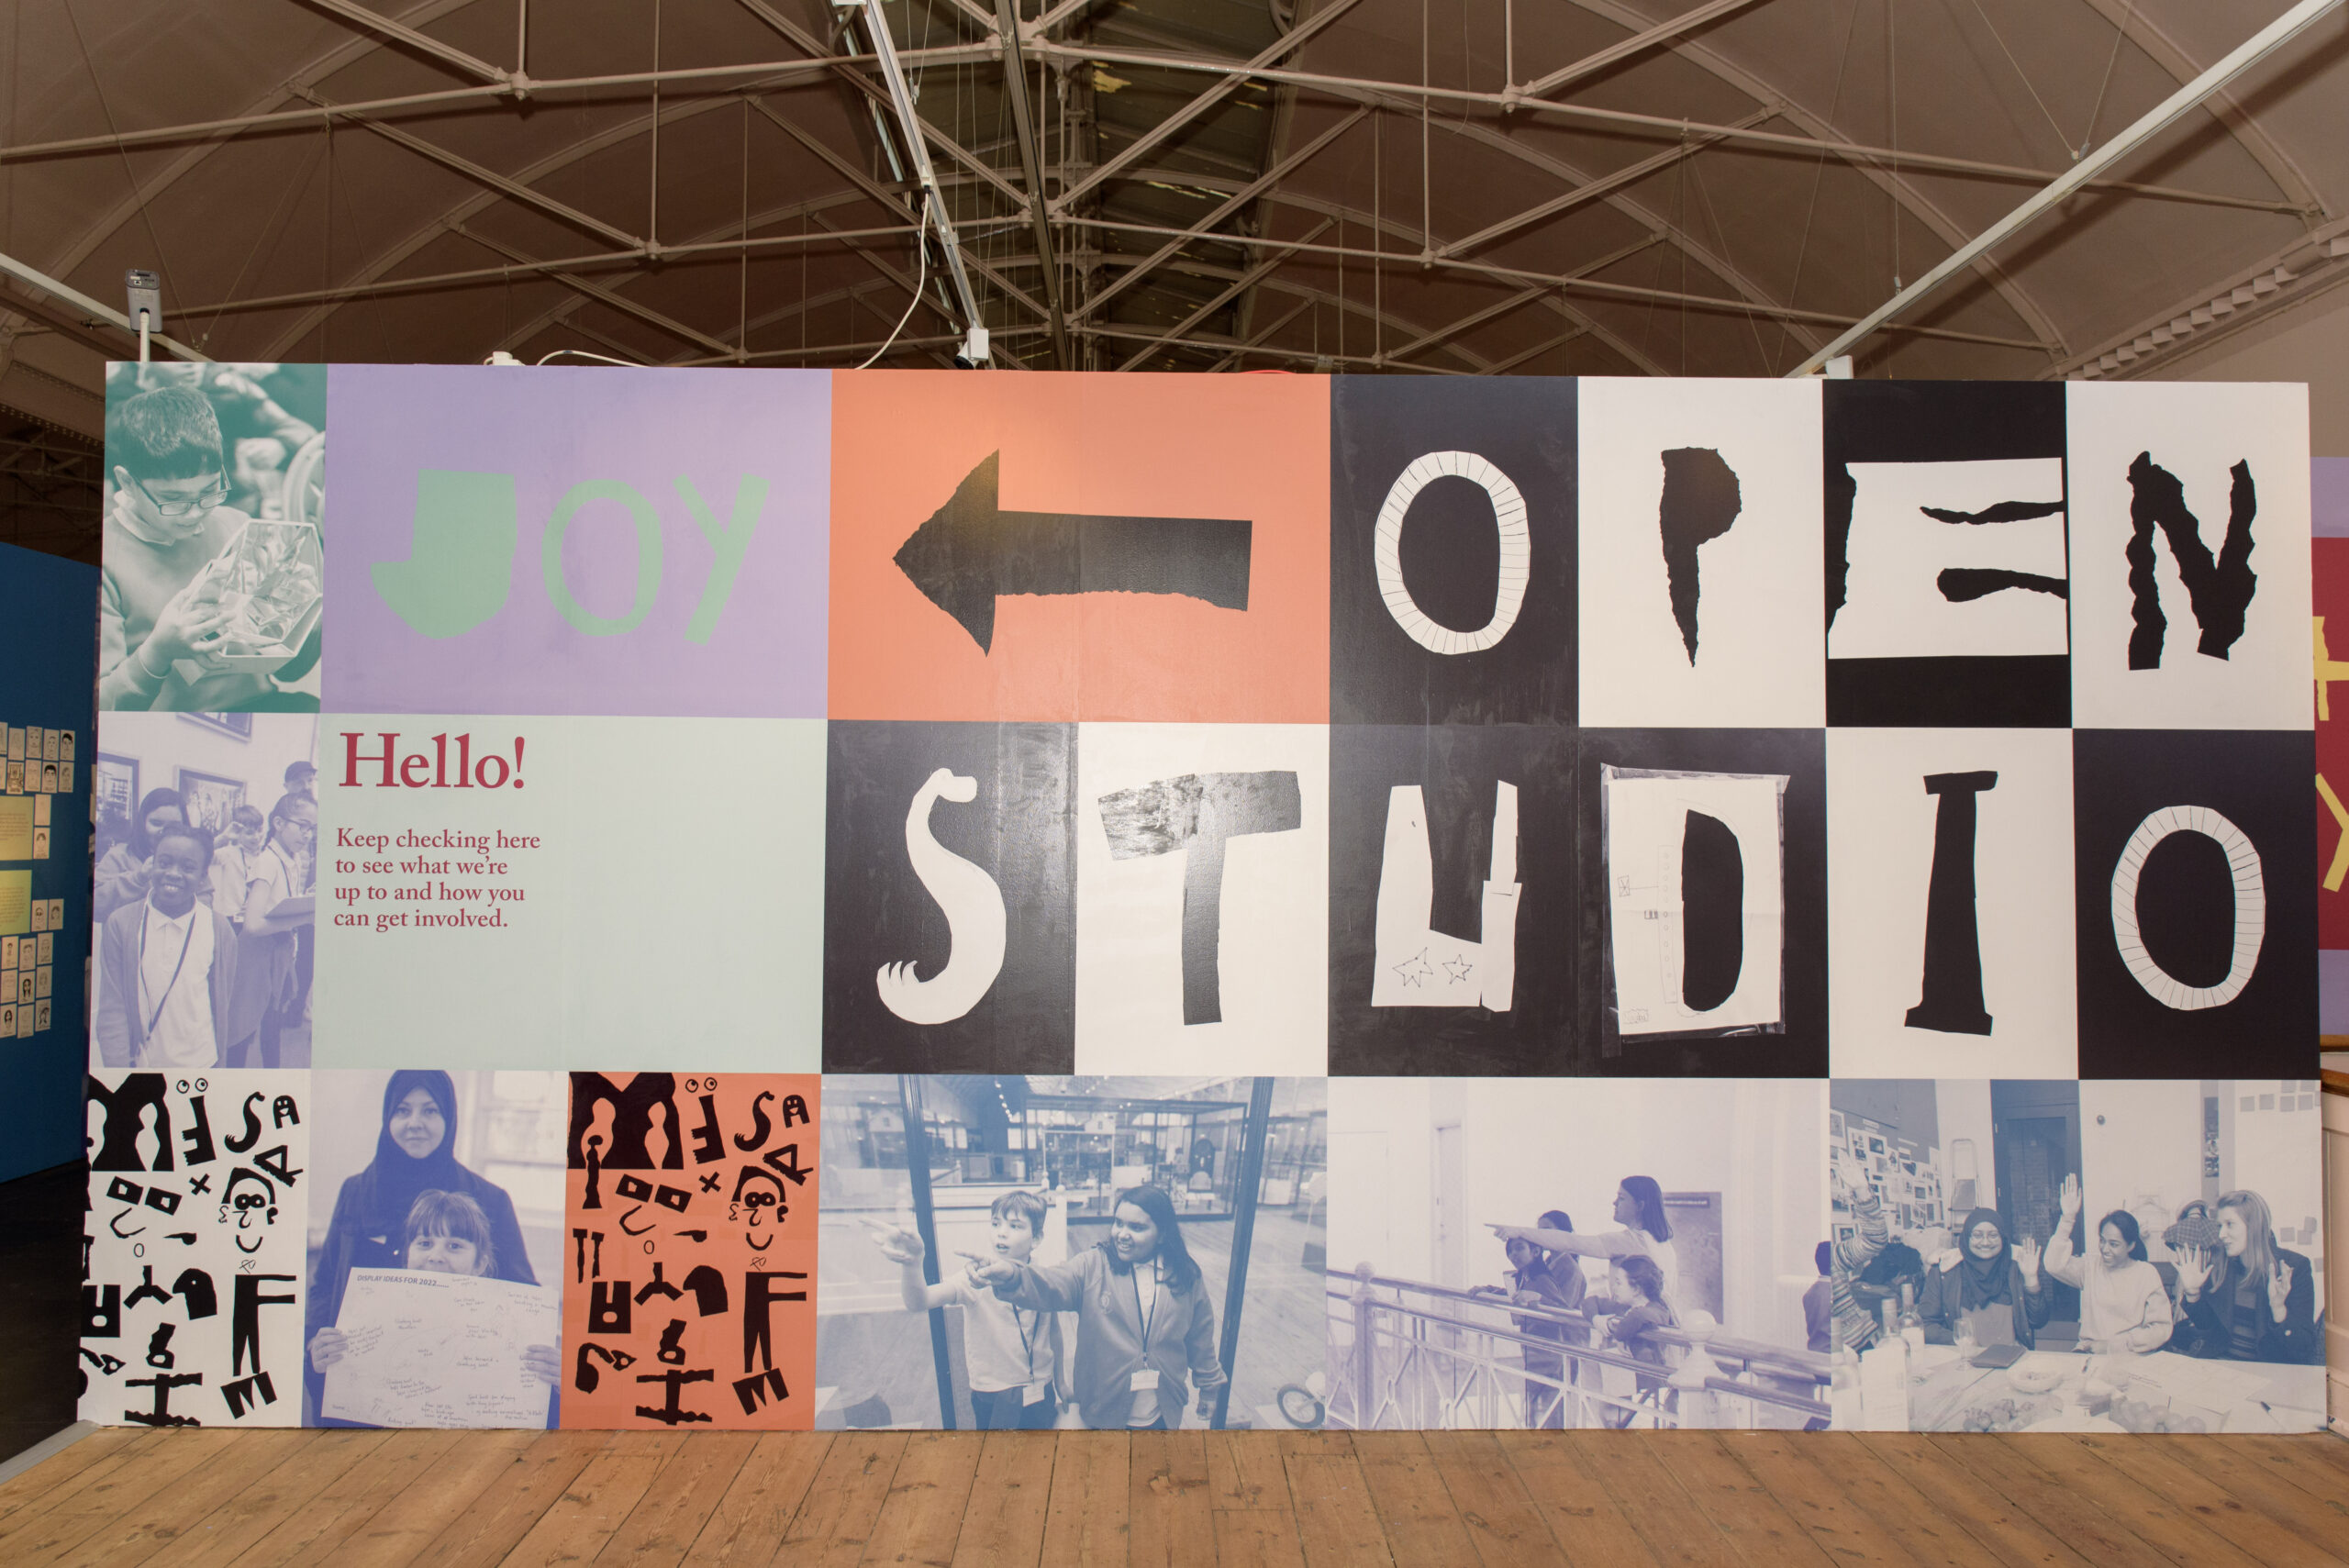 ©Entrance to the Open Studio co-design space, courtesy of the V&A Museum of Childhood